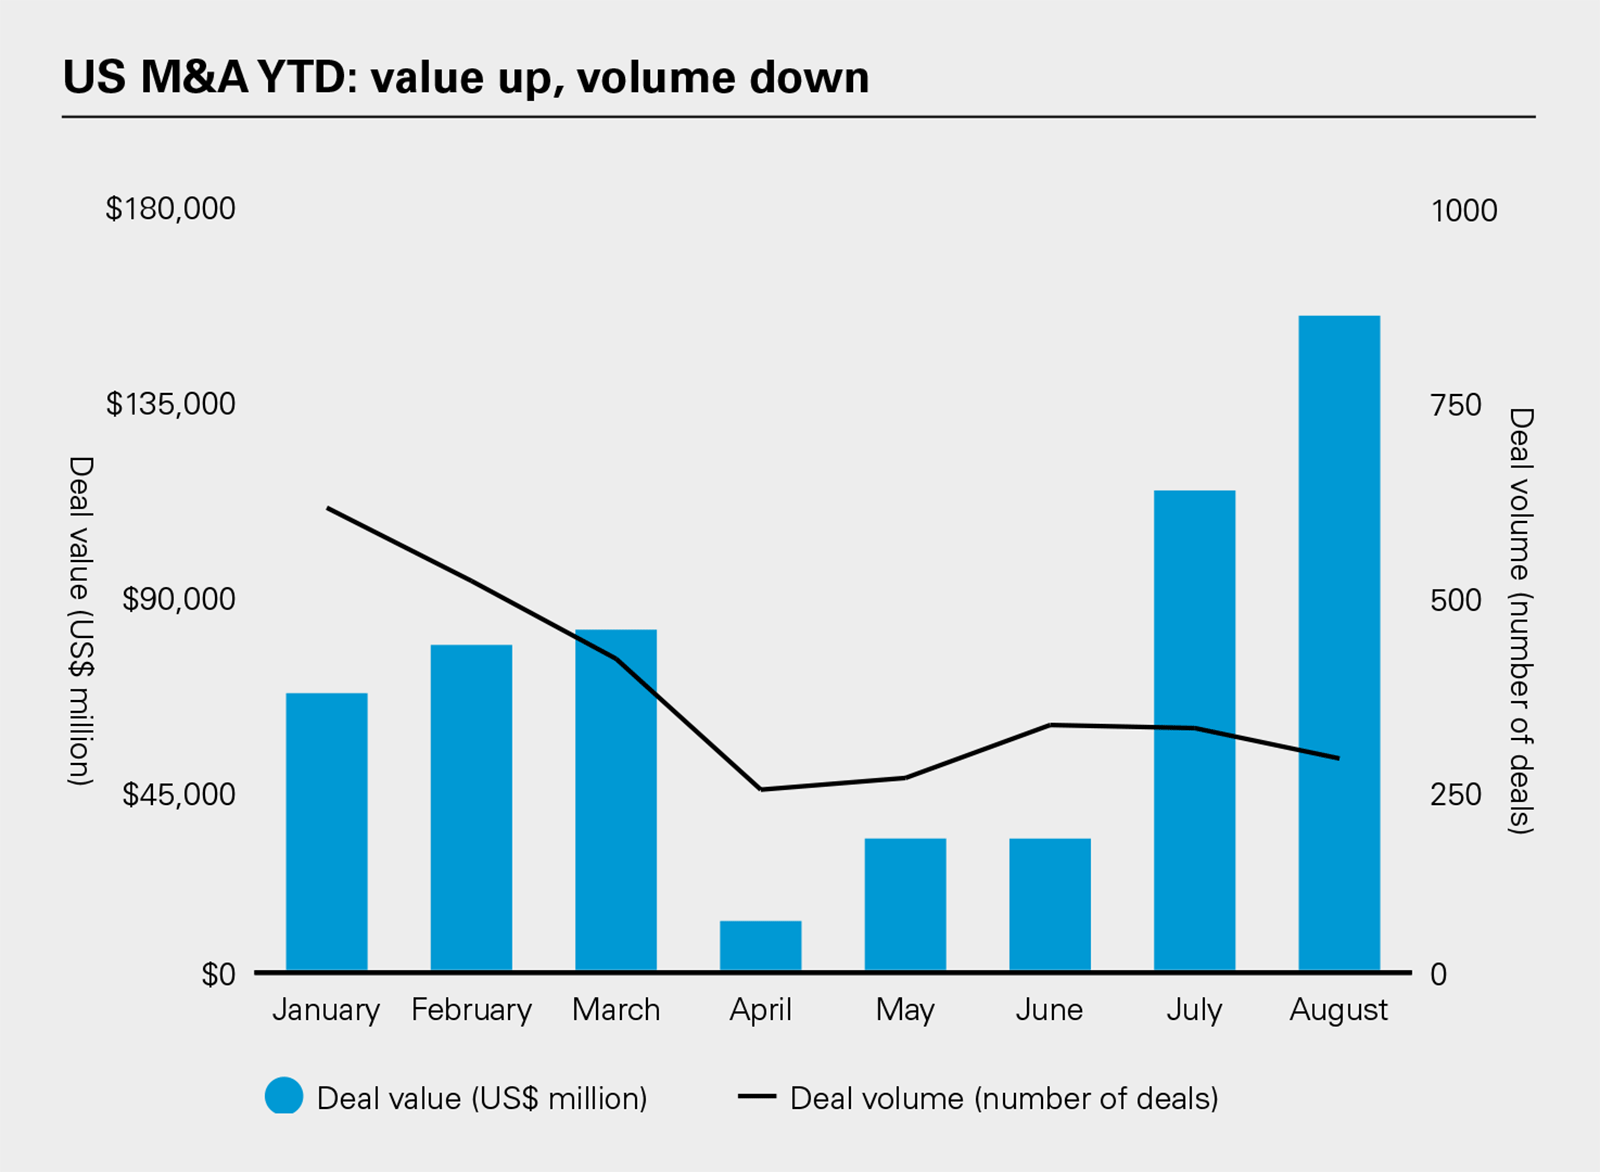 US M&A YTD: value up, volume down